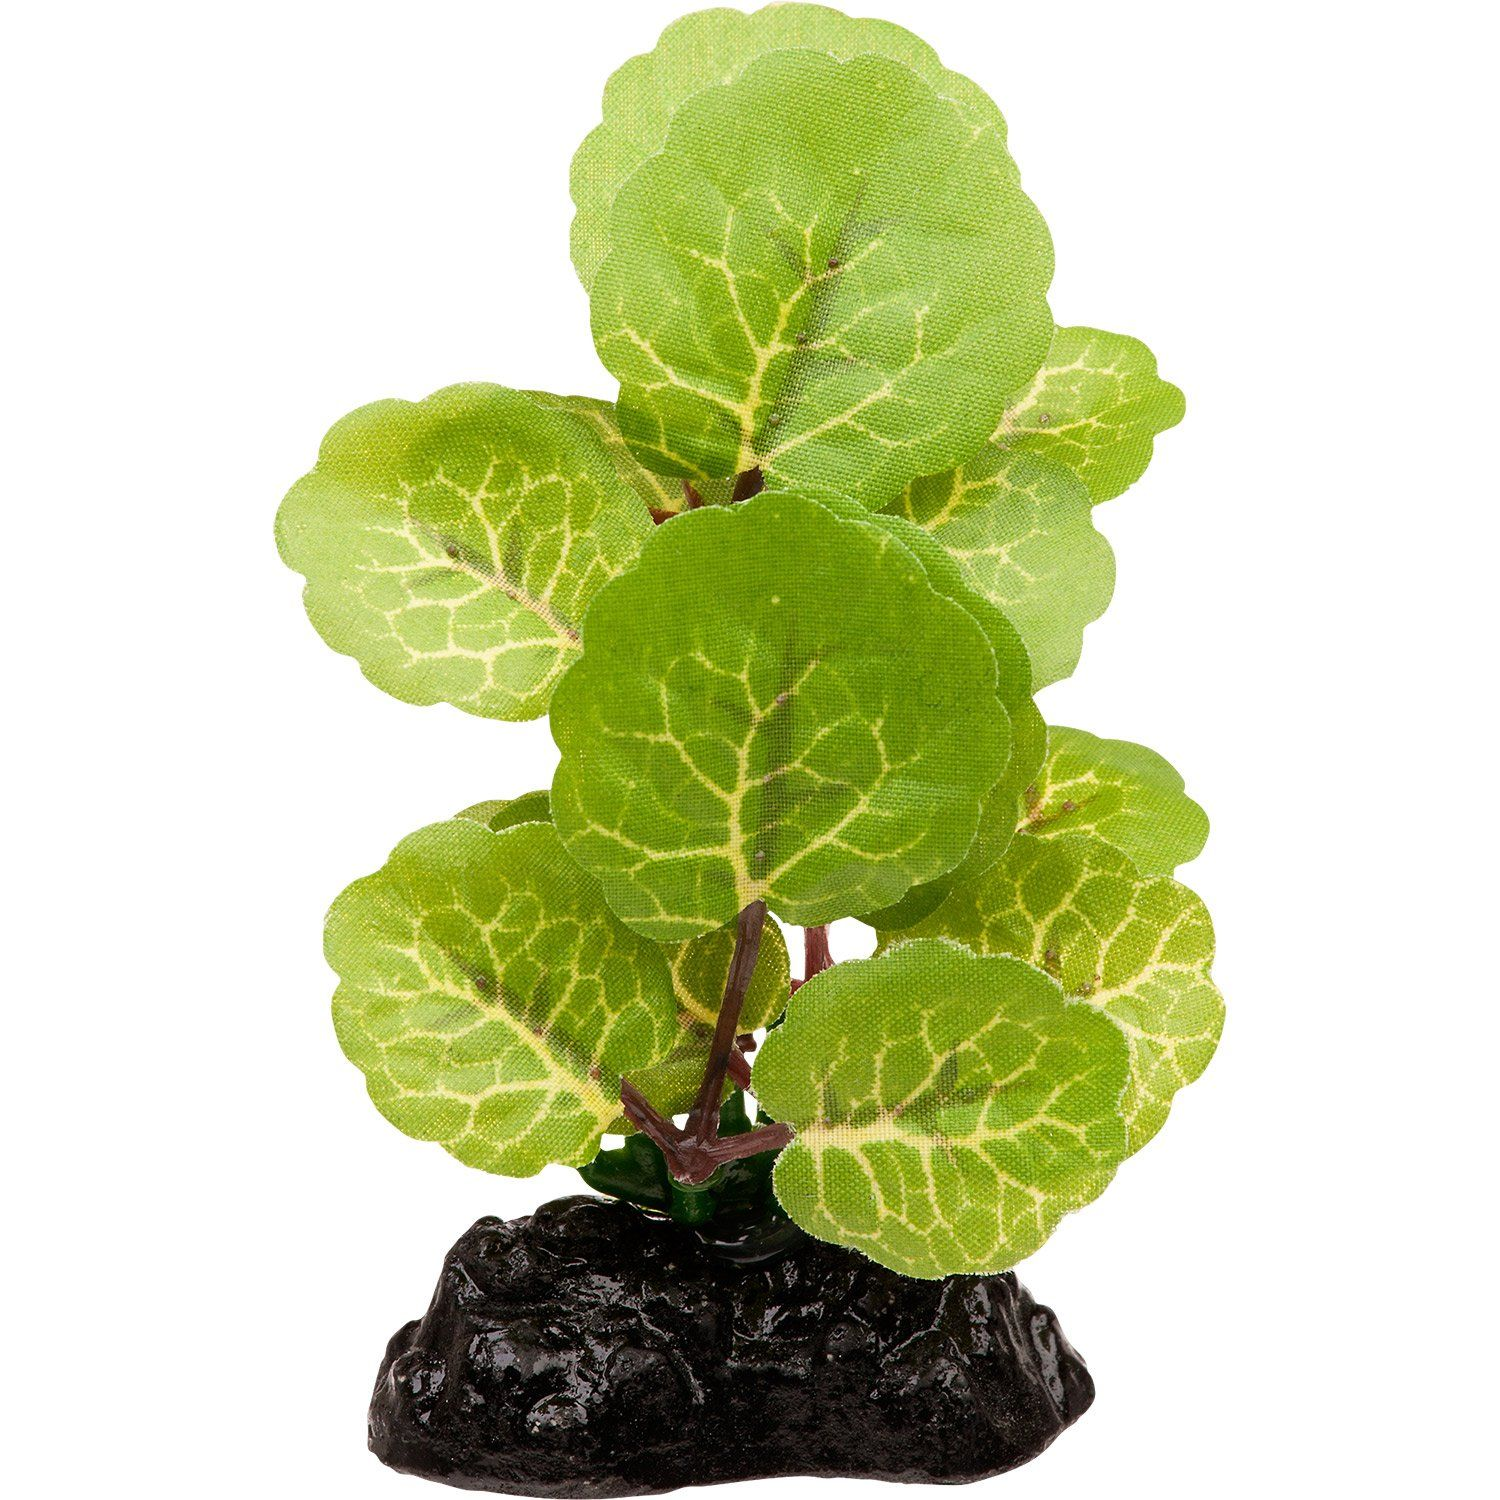 Natural looking and beautiful Realistic plants enhance aquariums